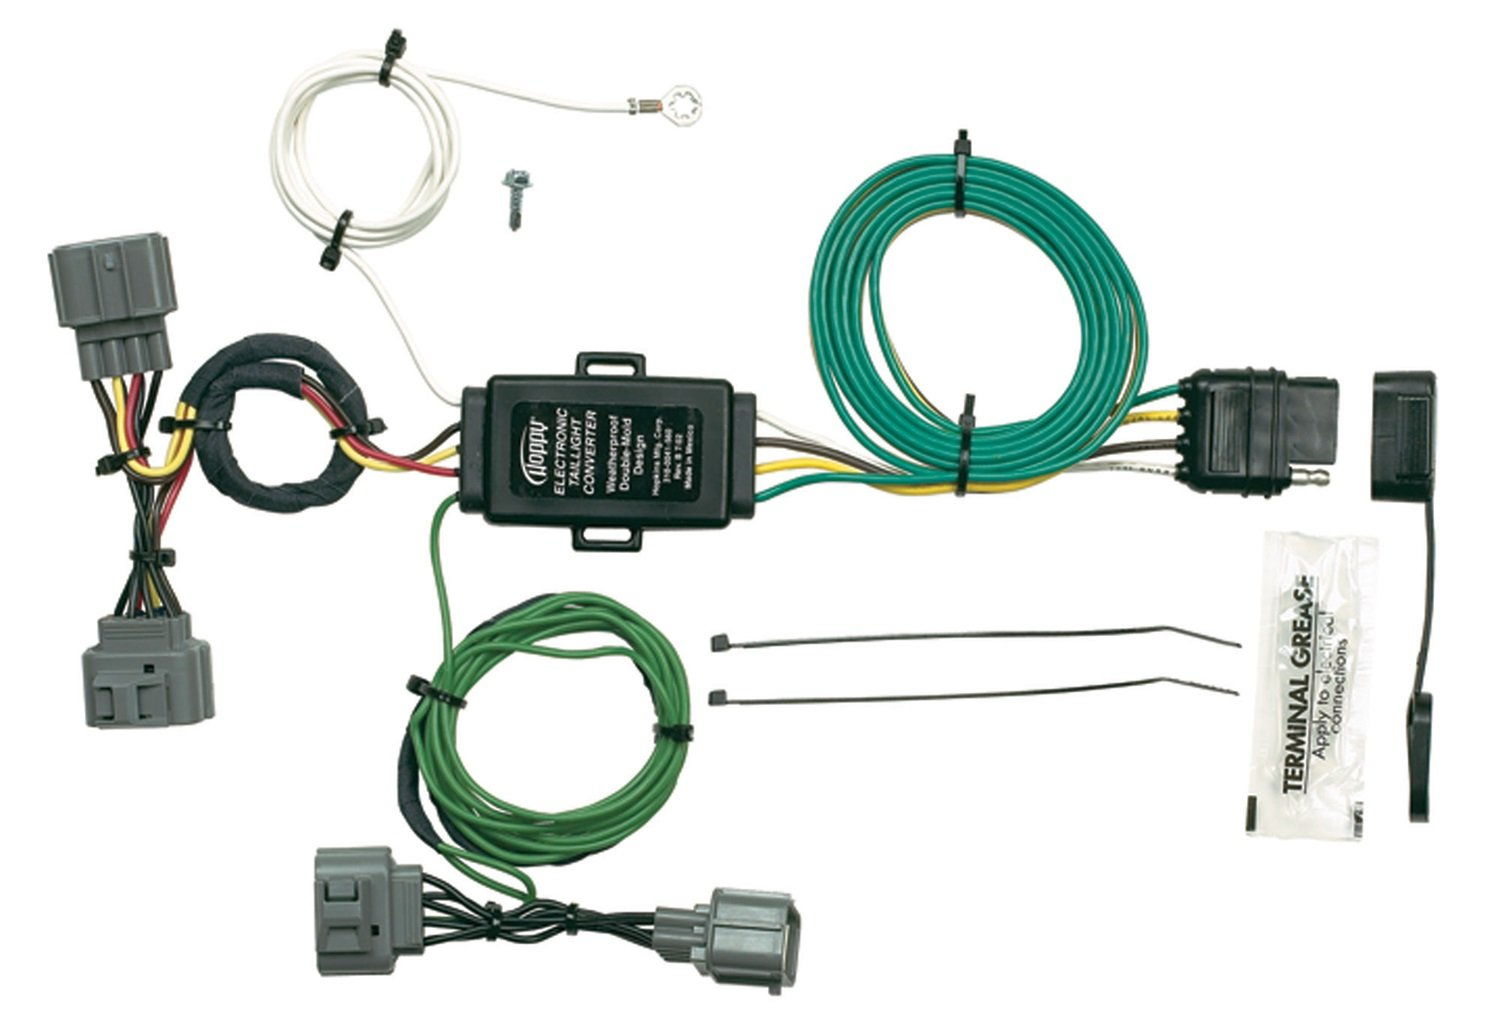 61uhFx0L6RL._SL1500_ amazon com hopkins 43125 plug in simple vehicle wiring kit honda ridgeline wiring harness towing at metegol.co